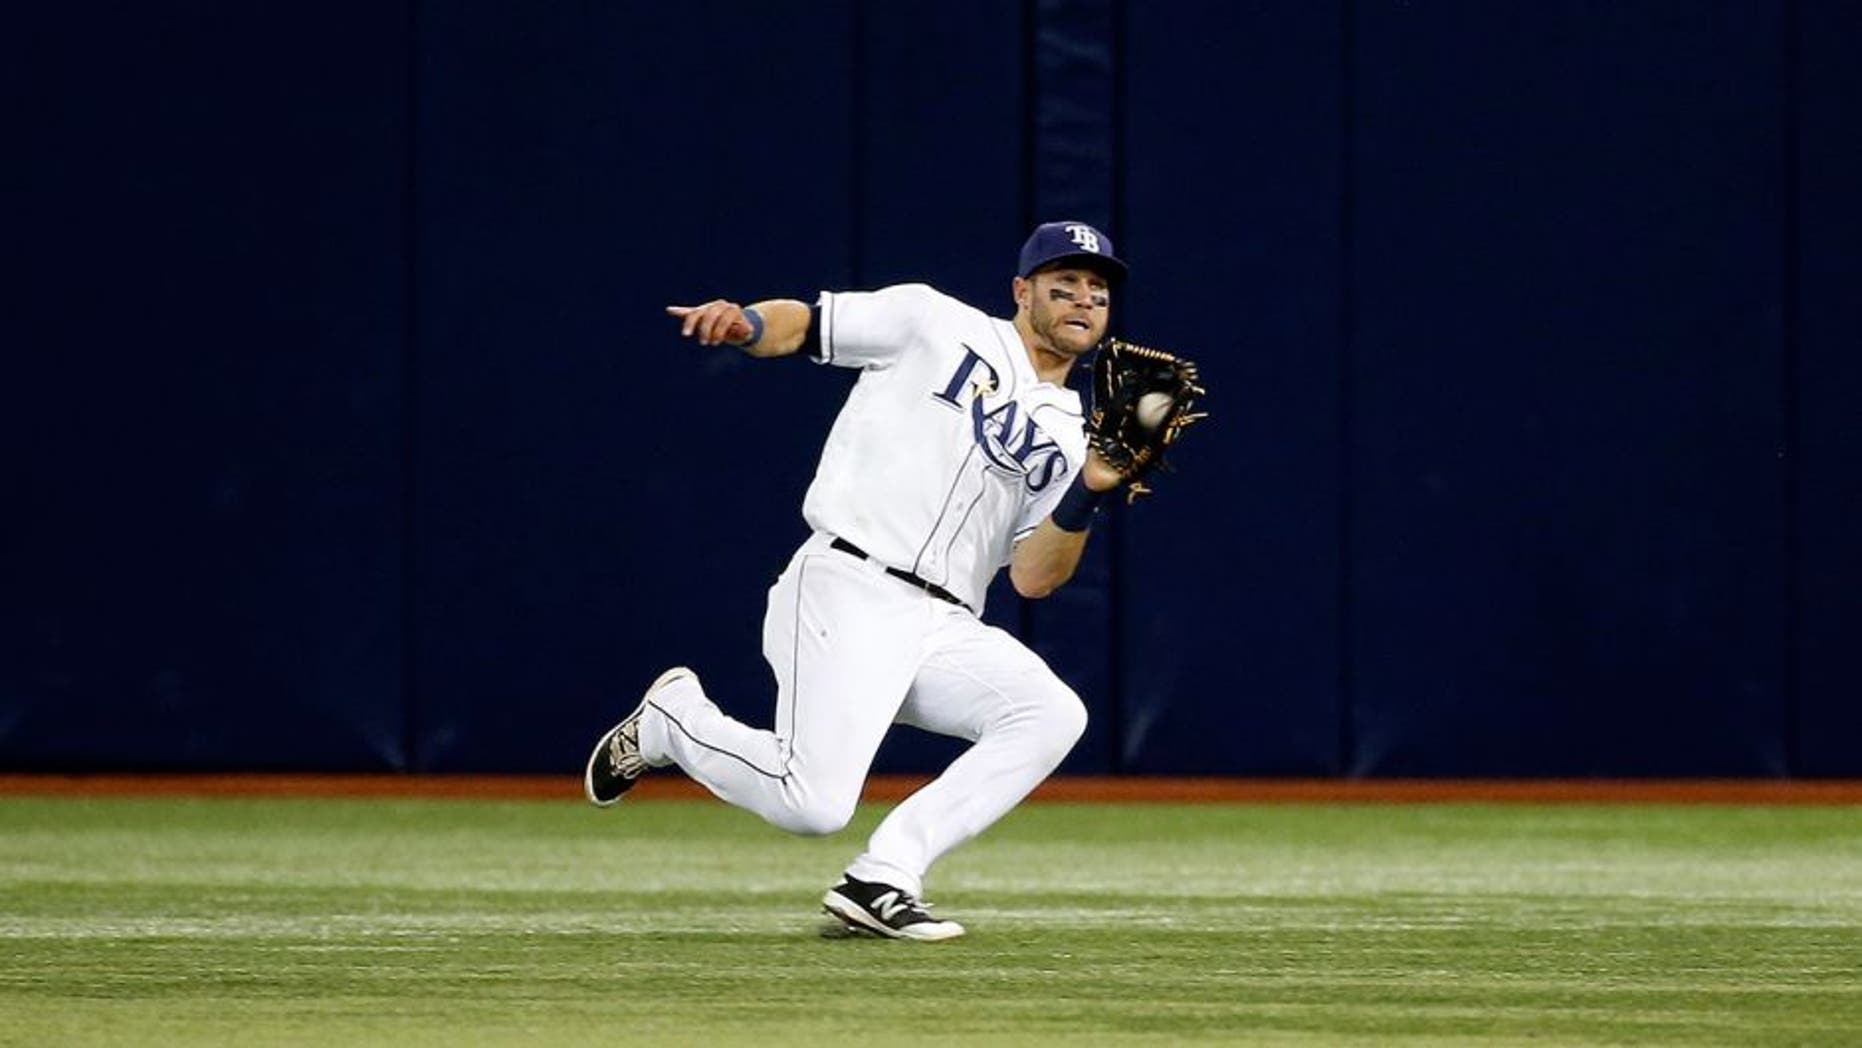 Apr 25, 2016; St. Petersburg, FL, USA; Tampa Bay Rays center fielder Kevin Kiermaier (39) catches a fly ball during the ninth inning against the Baltimore Orioles at Tropicana Field. Tampa Bay Rays defeated the Baltimore Orioles 2-0. Mandatory Credit: Kim Klement-USA TODAY Sports